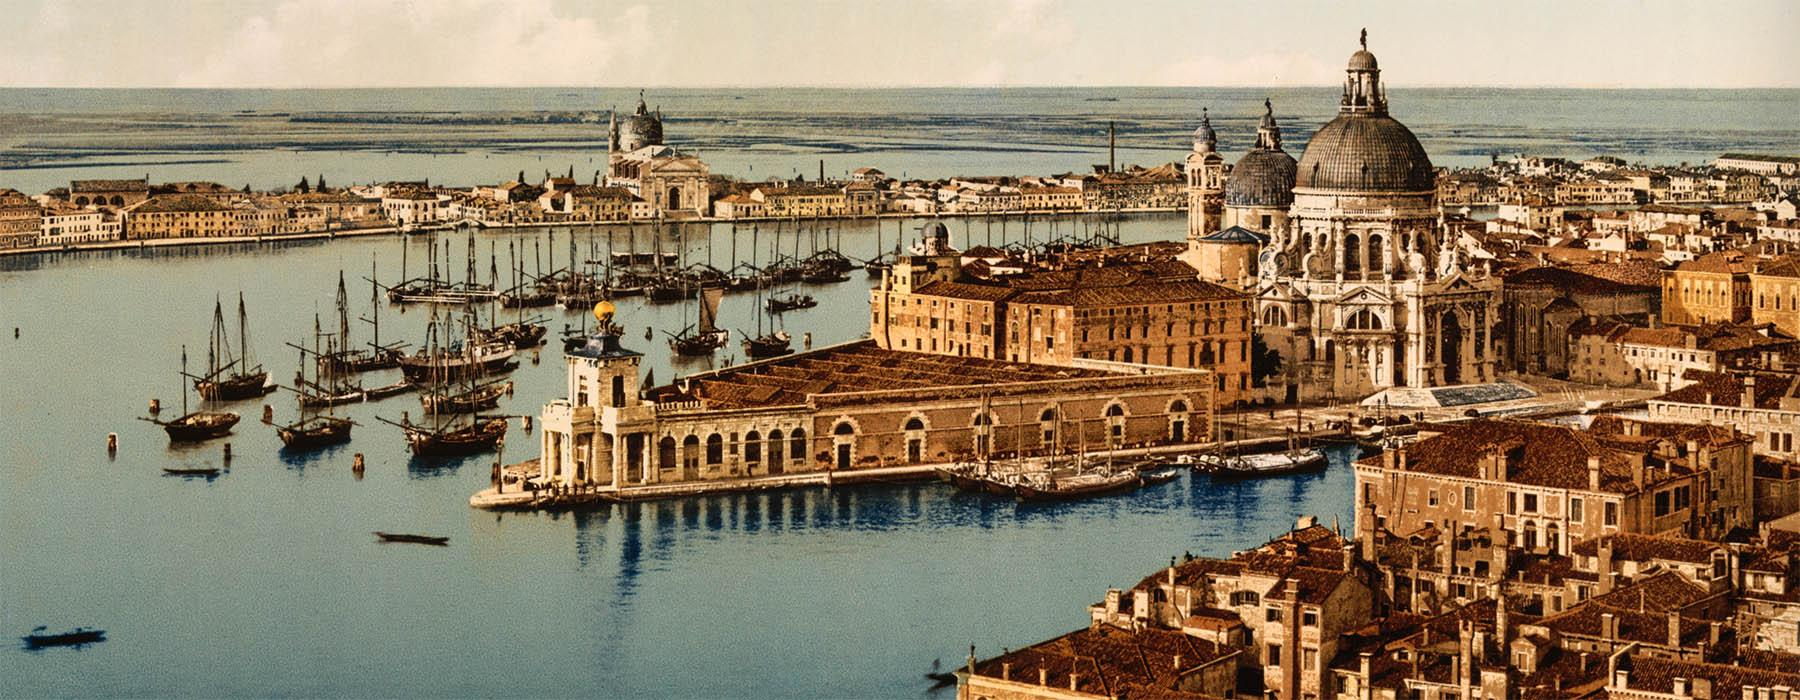 Arial view of Venice